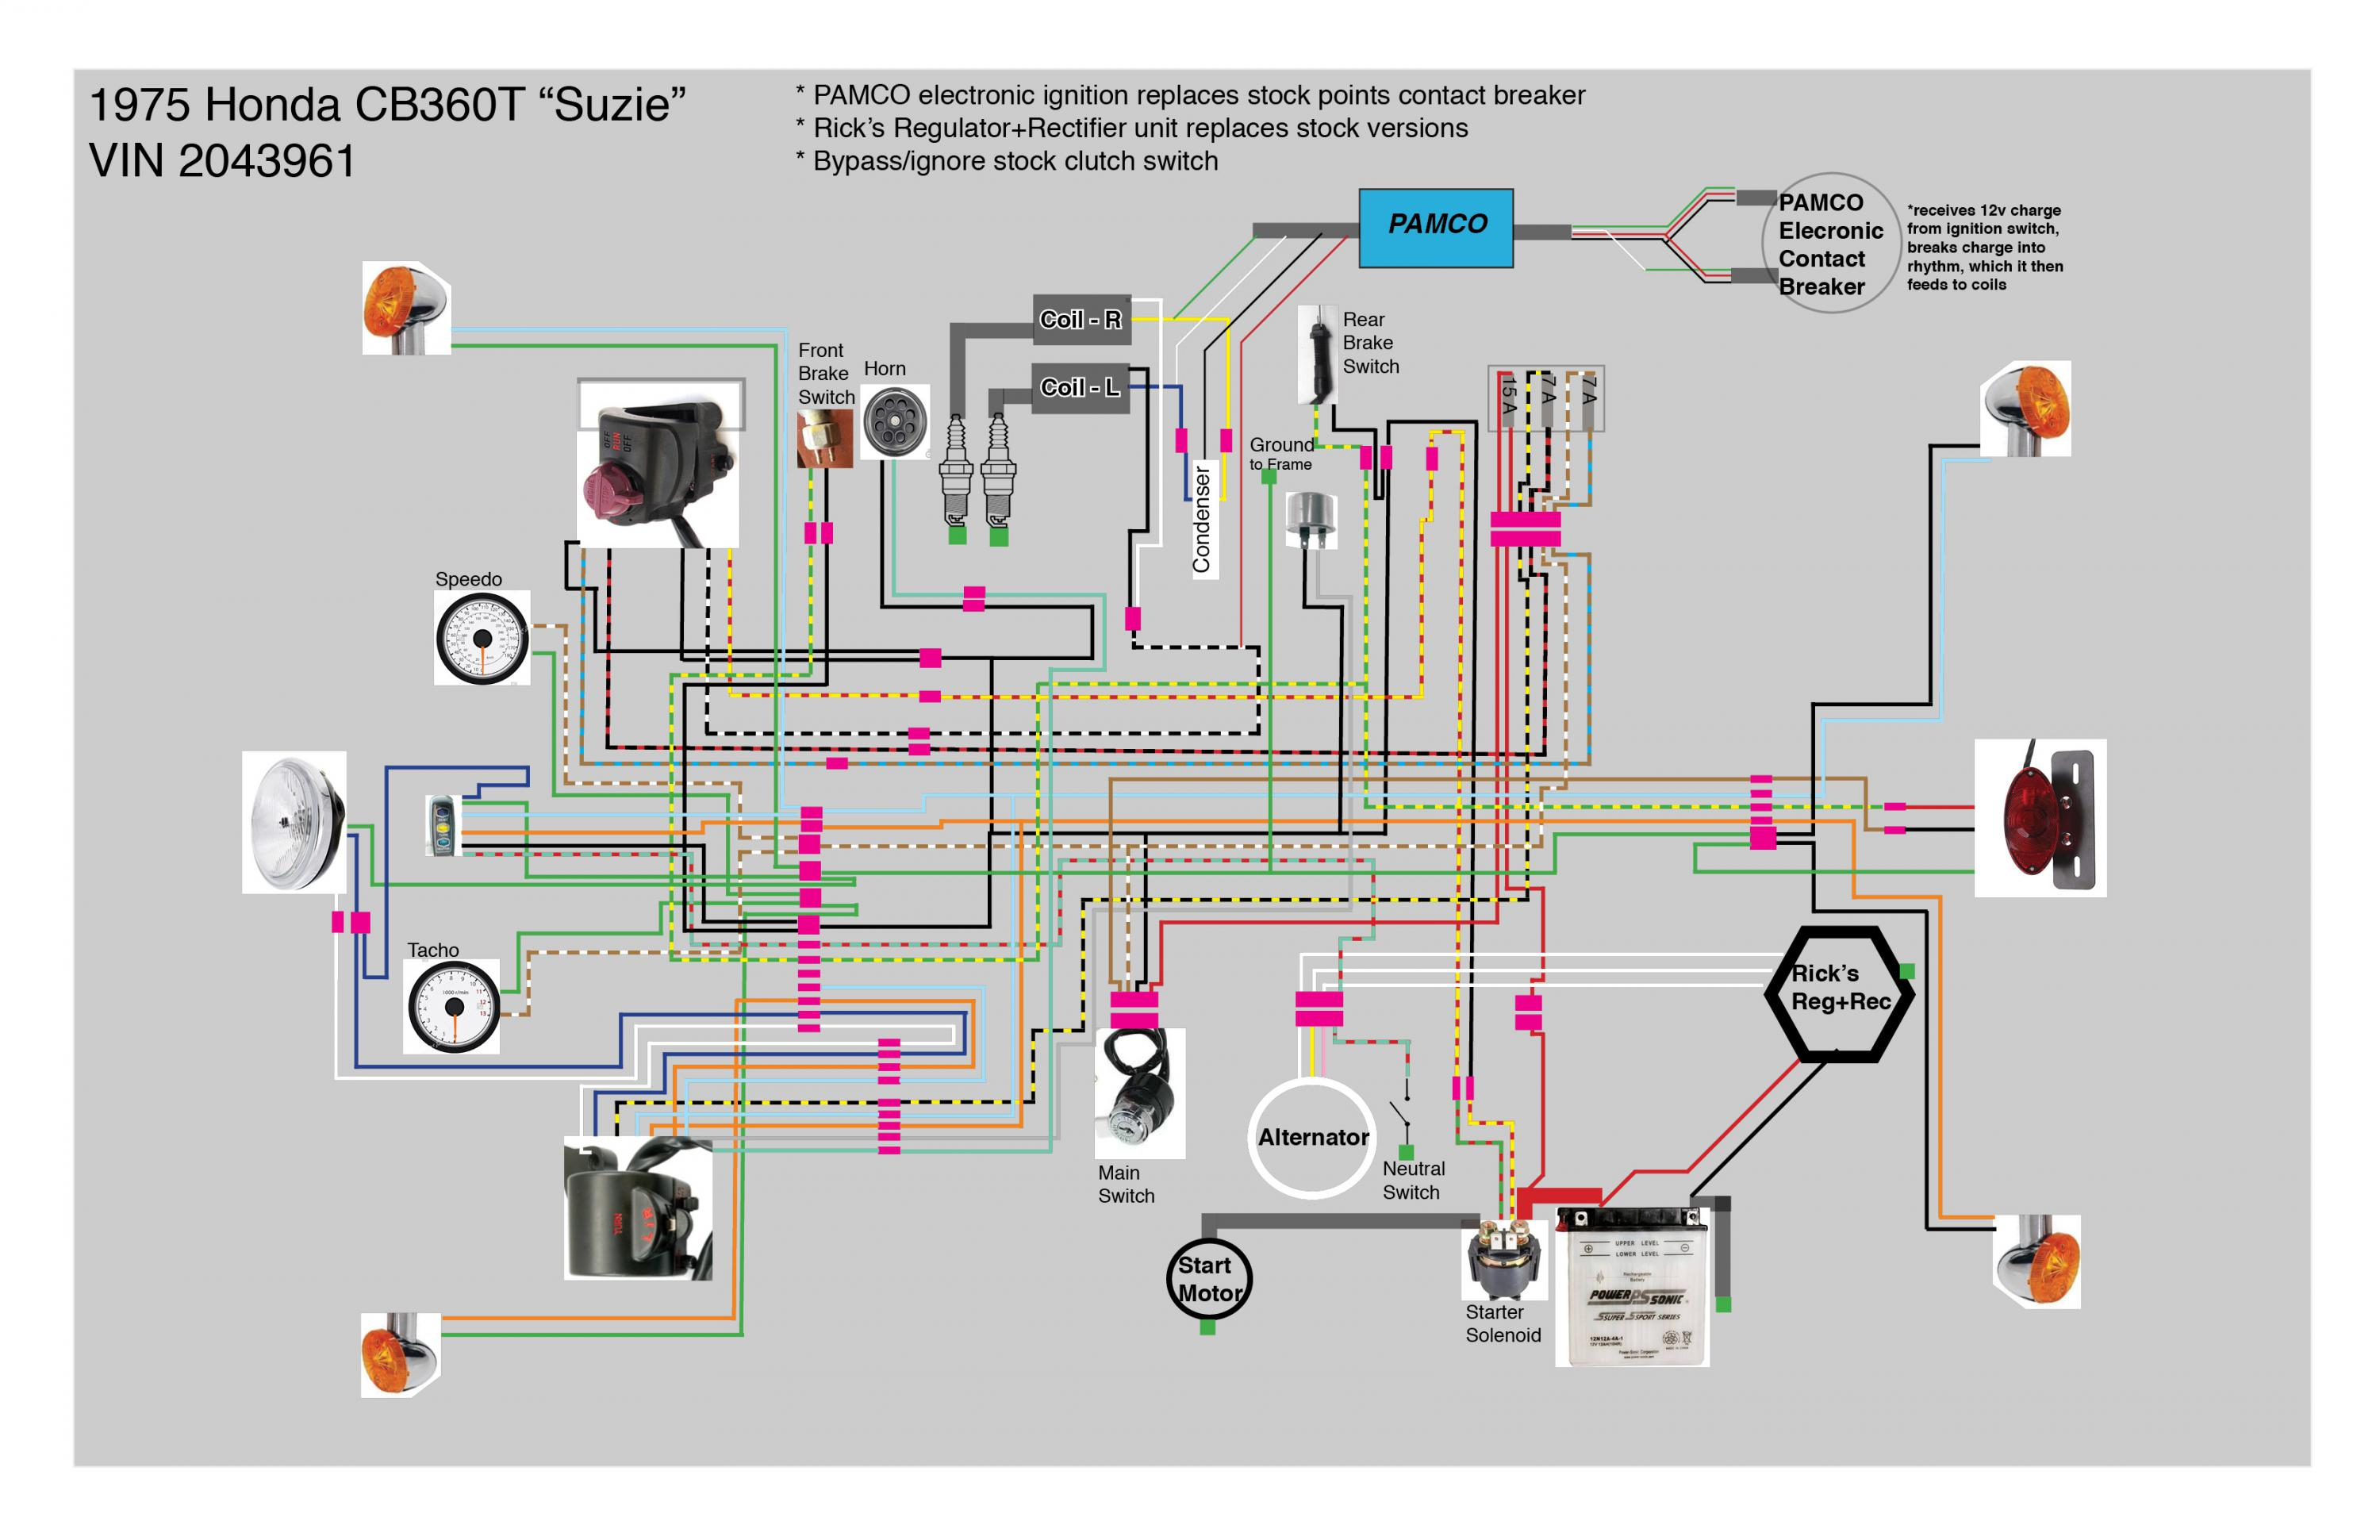 cb360t - better cleaner wiring diagram -wiringschematiclayers_cb360_170701 jpg